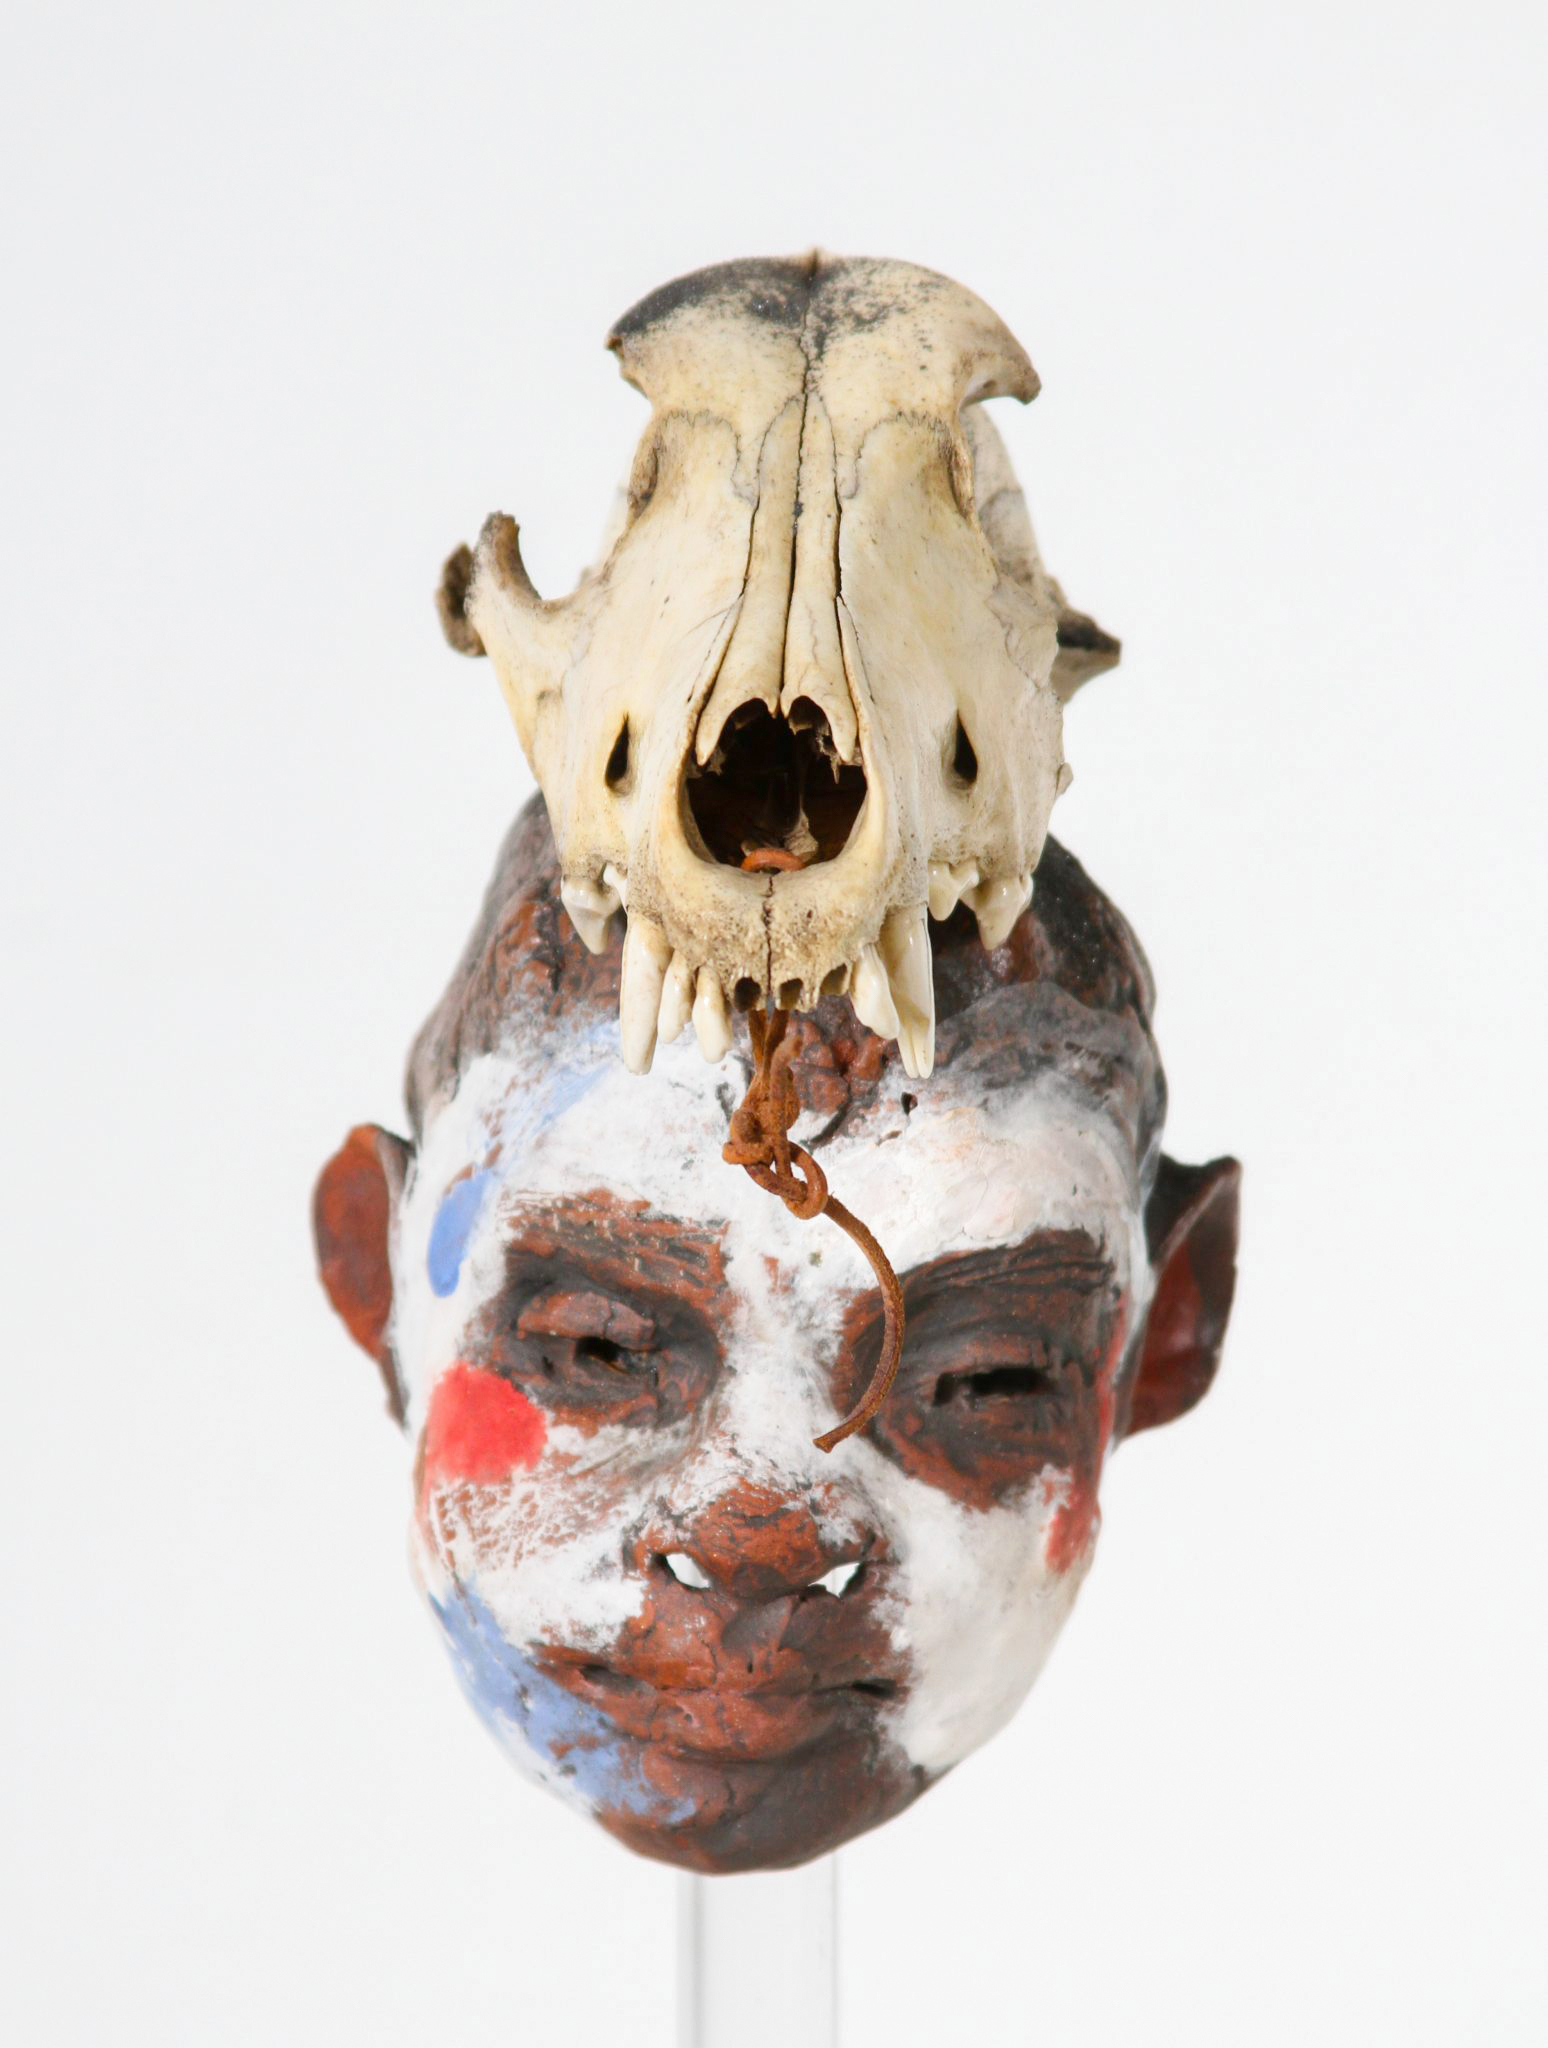 "Arthur Gonzalez - Boy with Two Masks - 2015 - Ceramic - 15"" x 15"" x 12"""